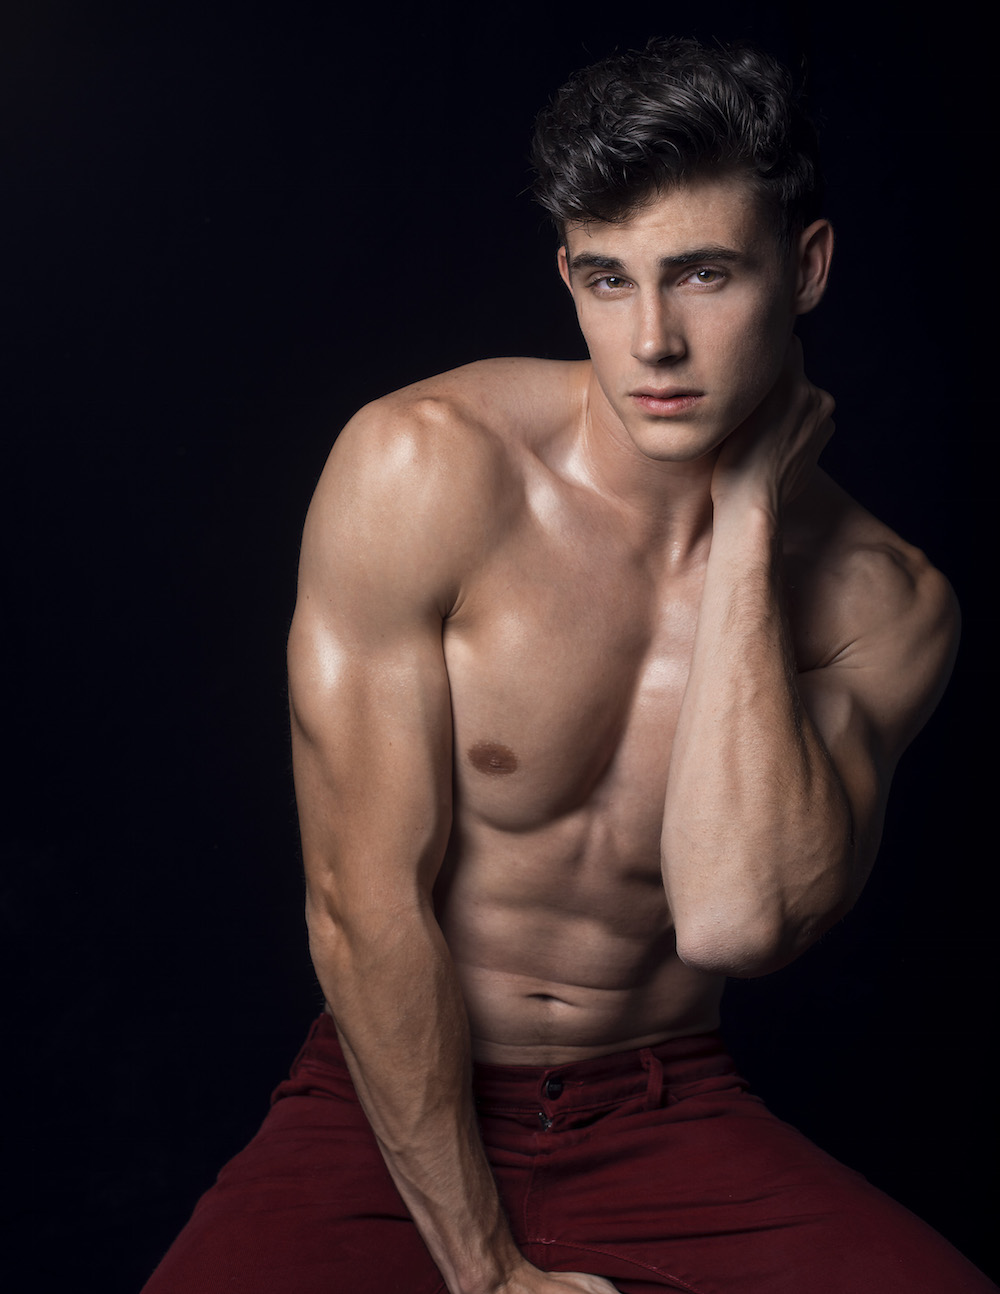 Nicholas Spalding by Cody Kinsfather